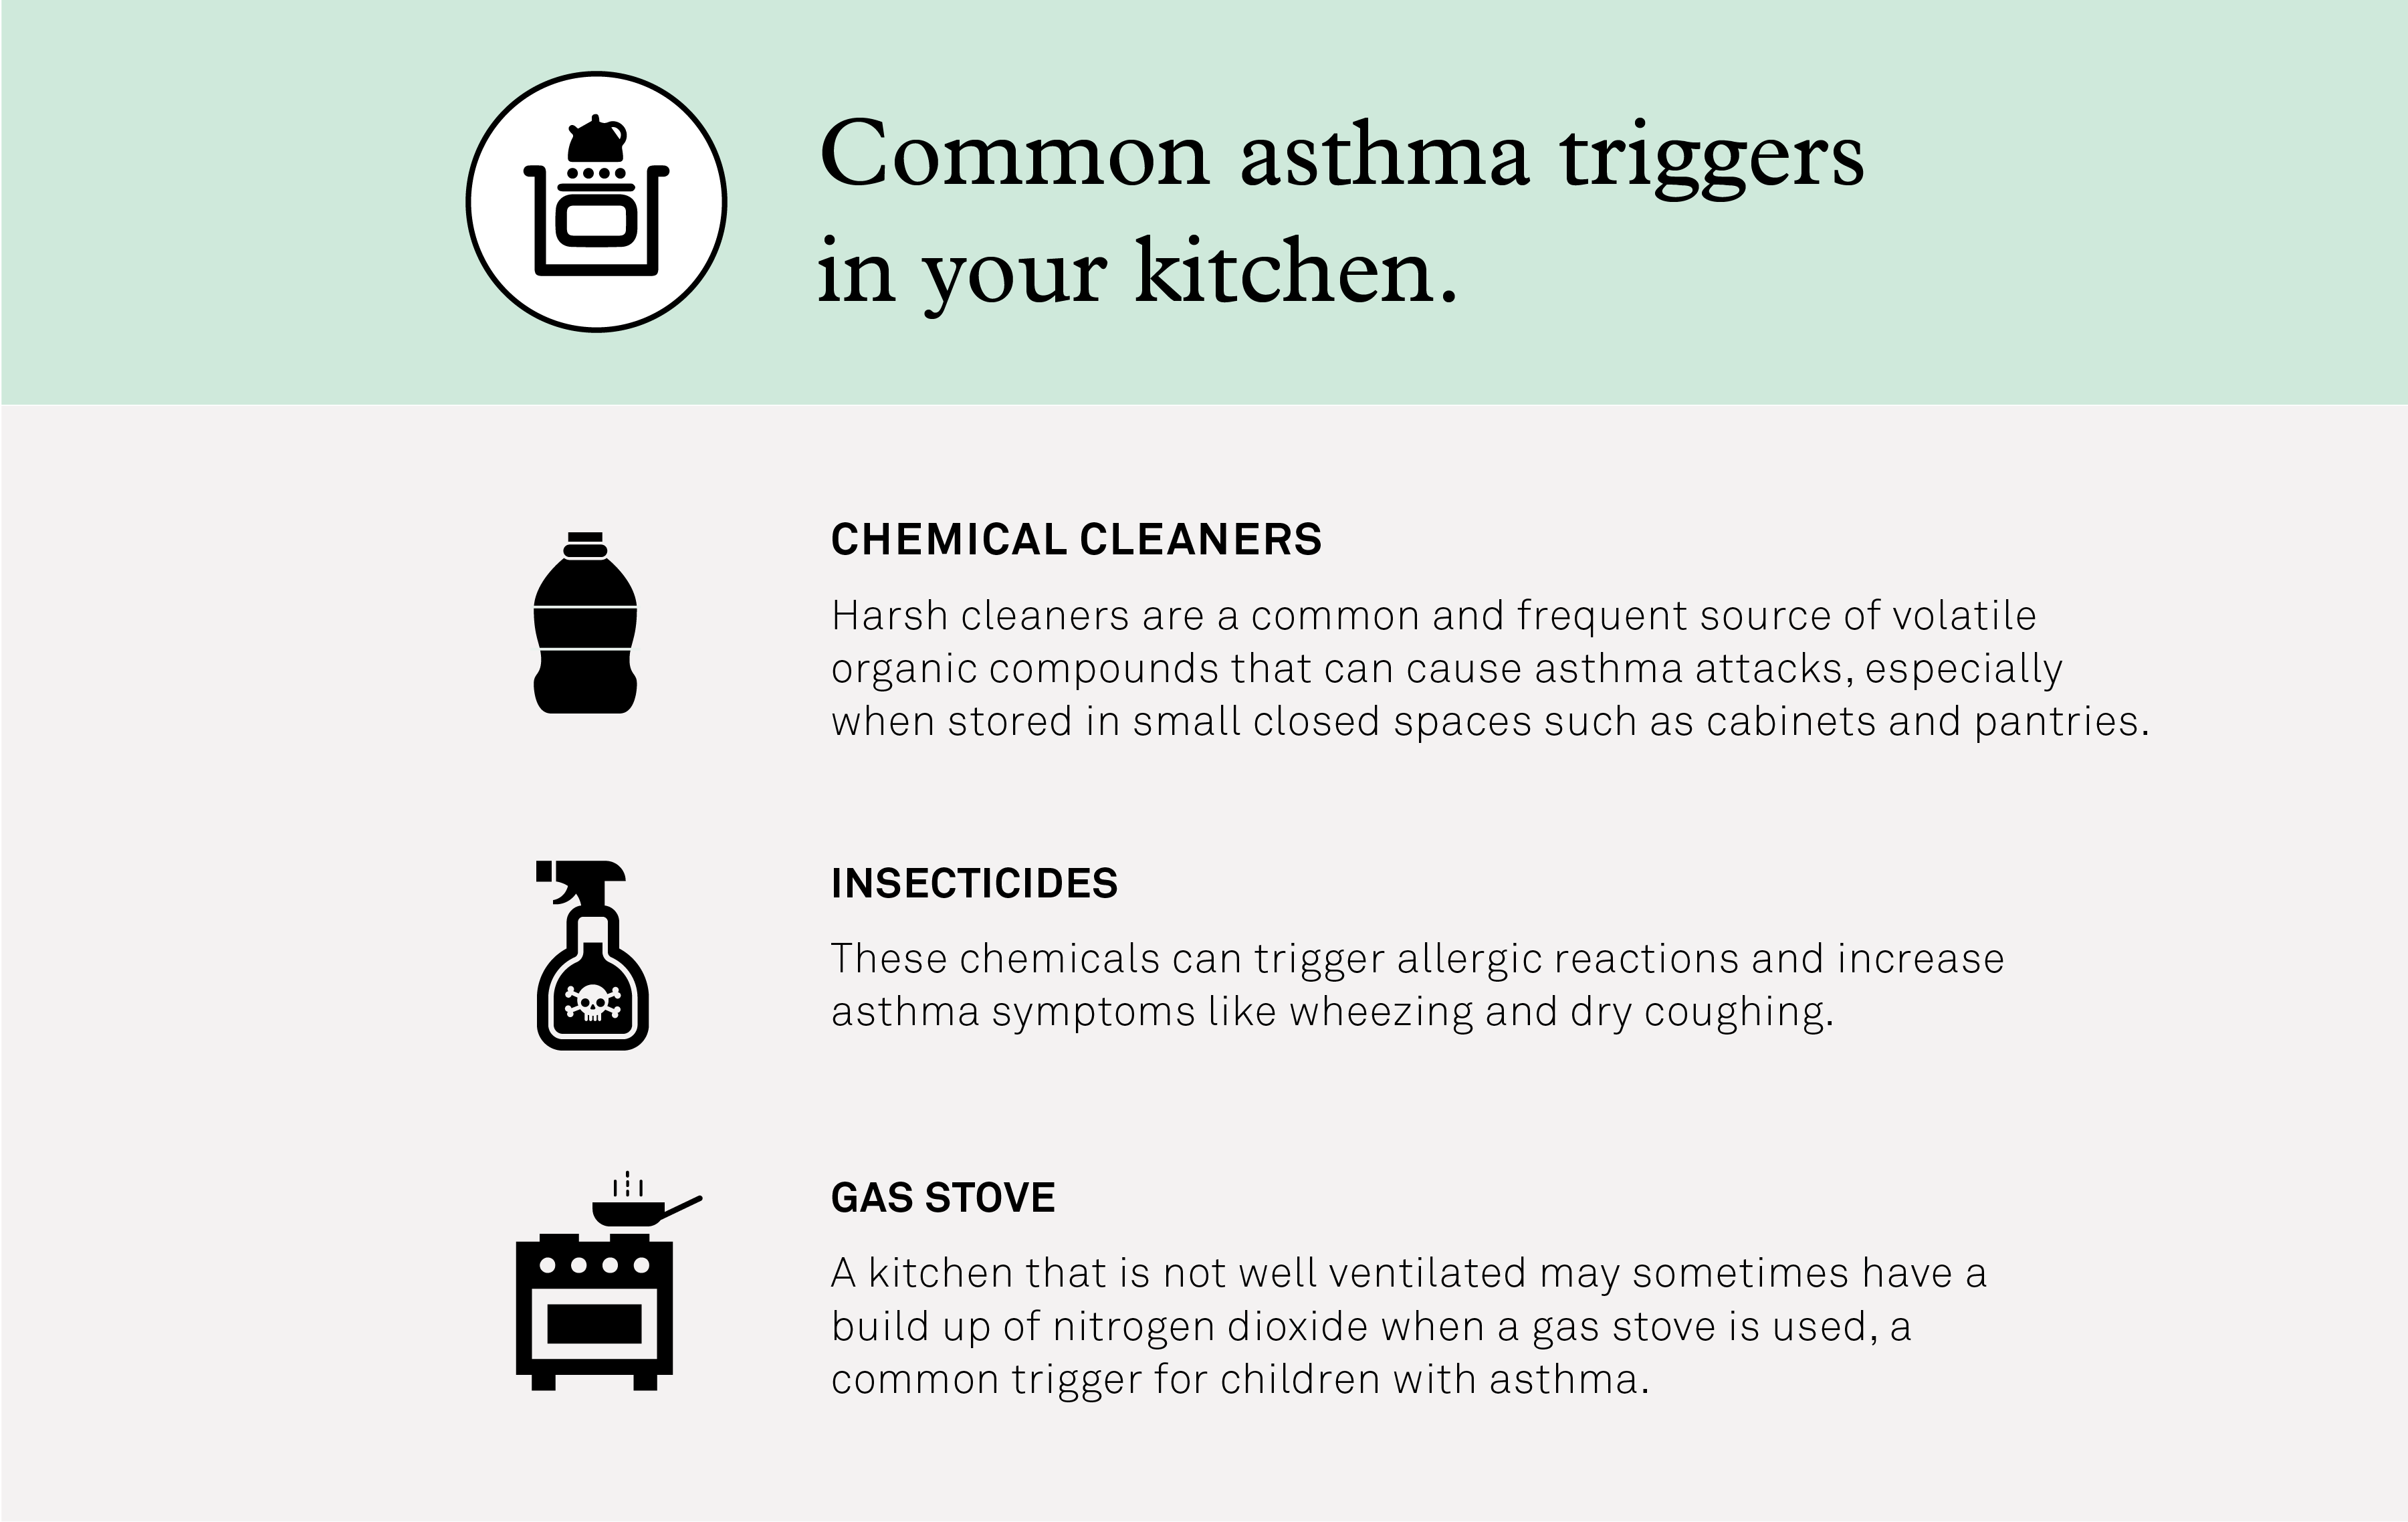 Asthma Triggers in Kitchen